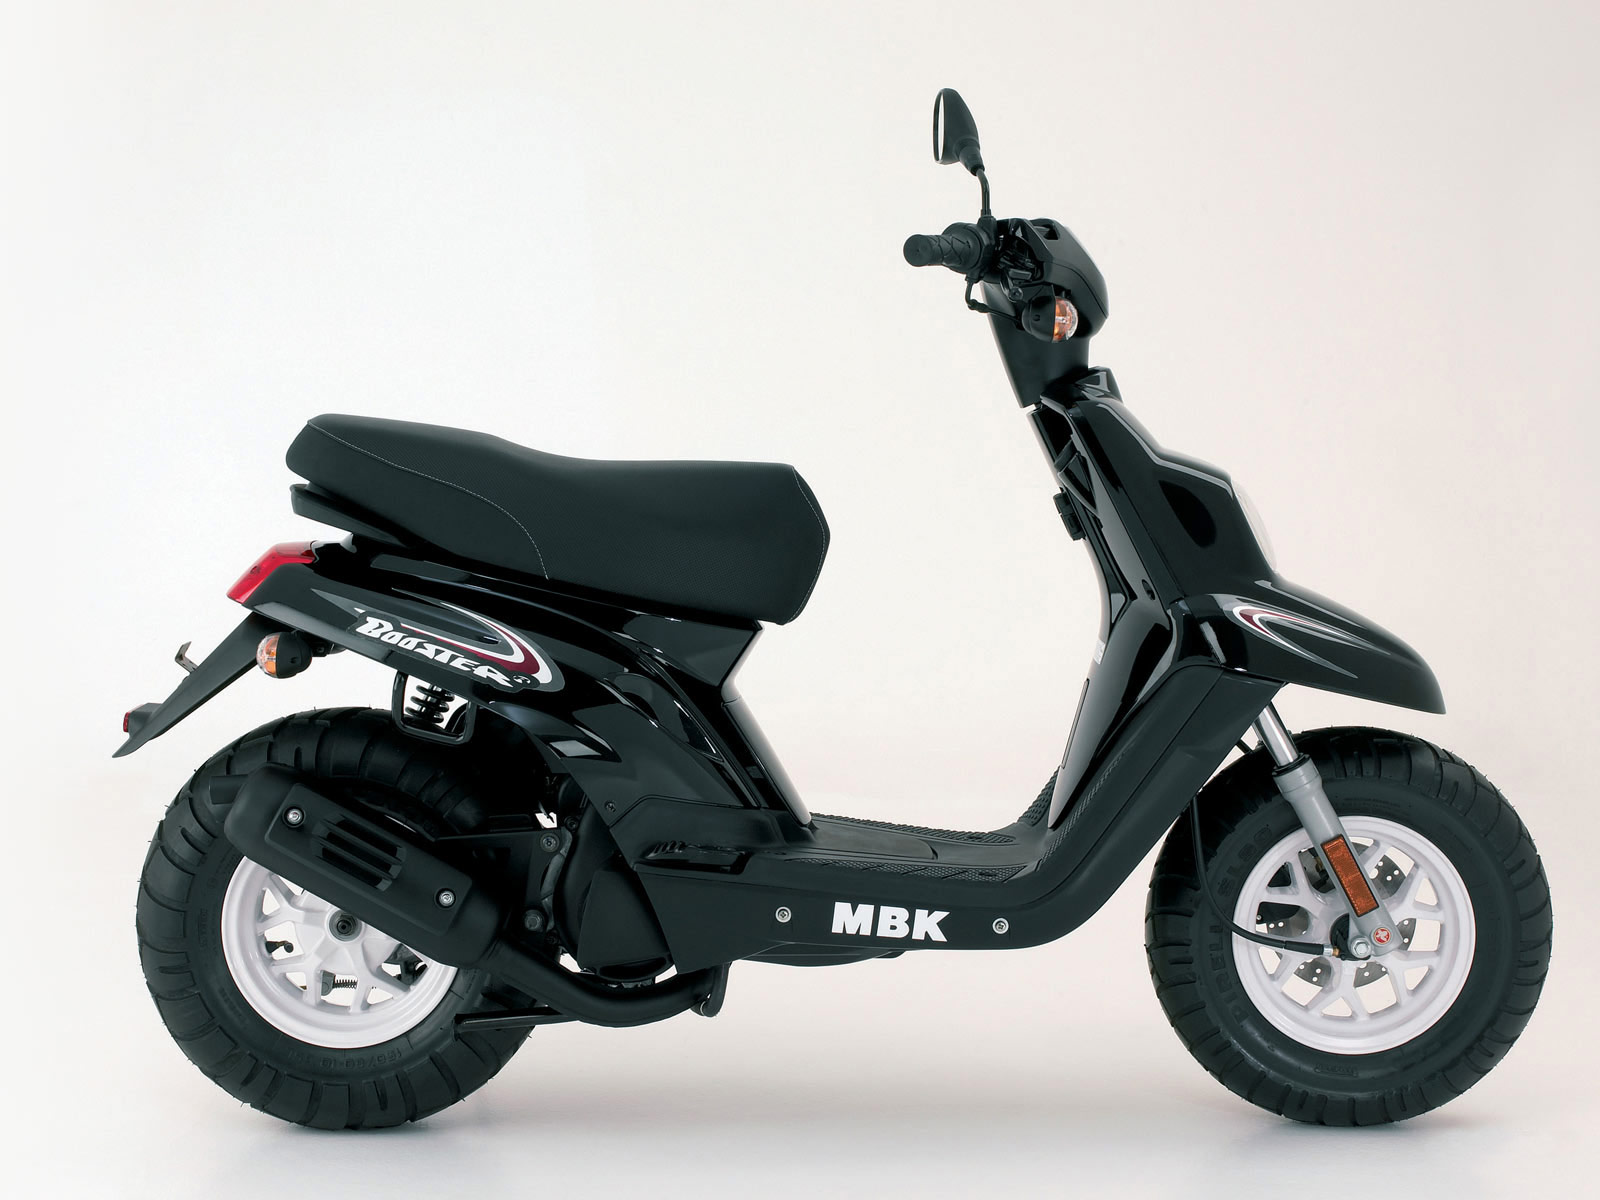 mbk scooter pictures 2006 mbk booster specifications. Black Bedroom Furniture Sets. Home Design Ideas